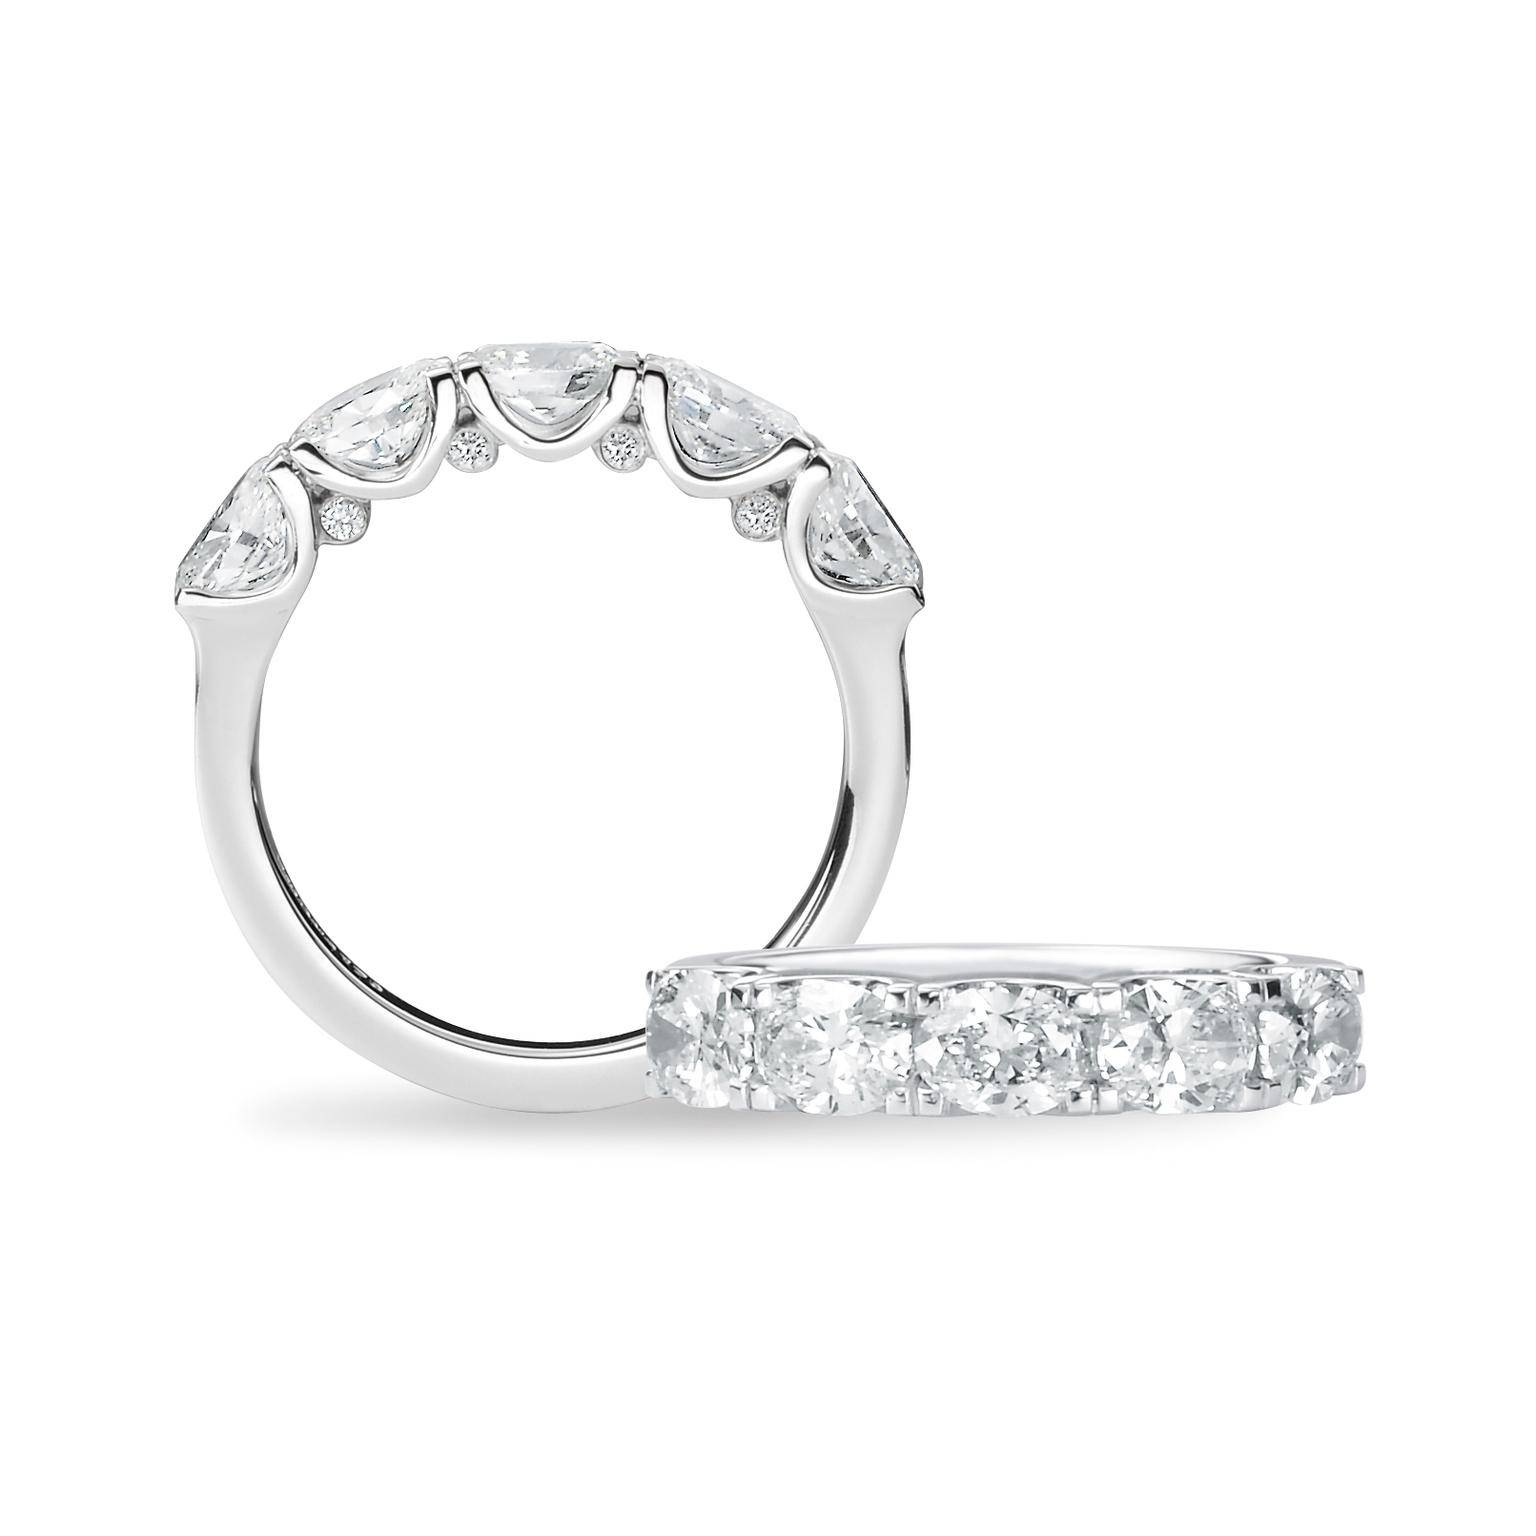 Oval Engagement Rings: The Cut For Maximum Sparkle | The Jewellery Regarding Five Diamond Engagement Ring (Gallery 10 of 15)